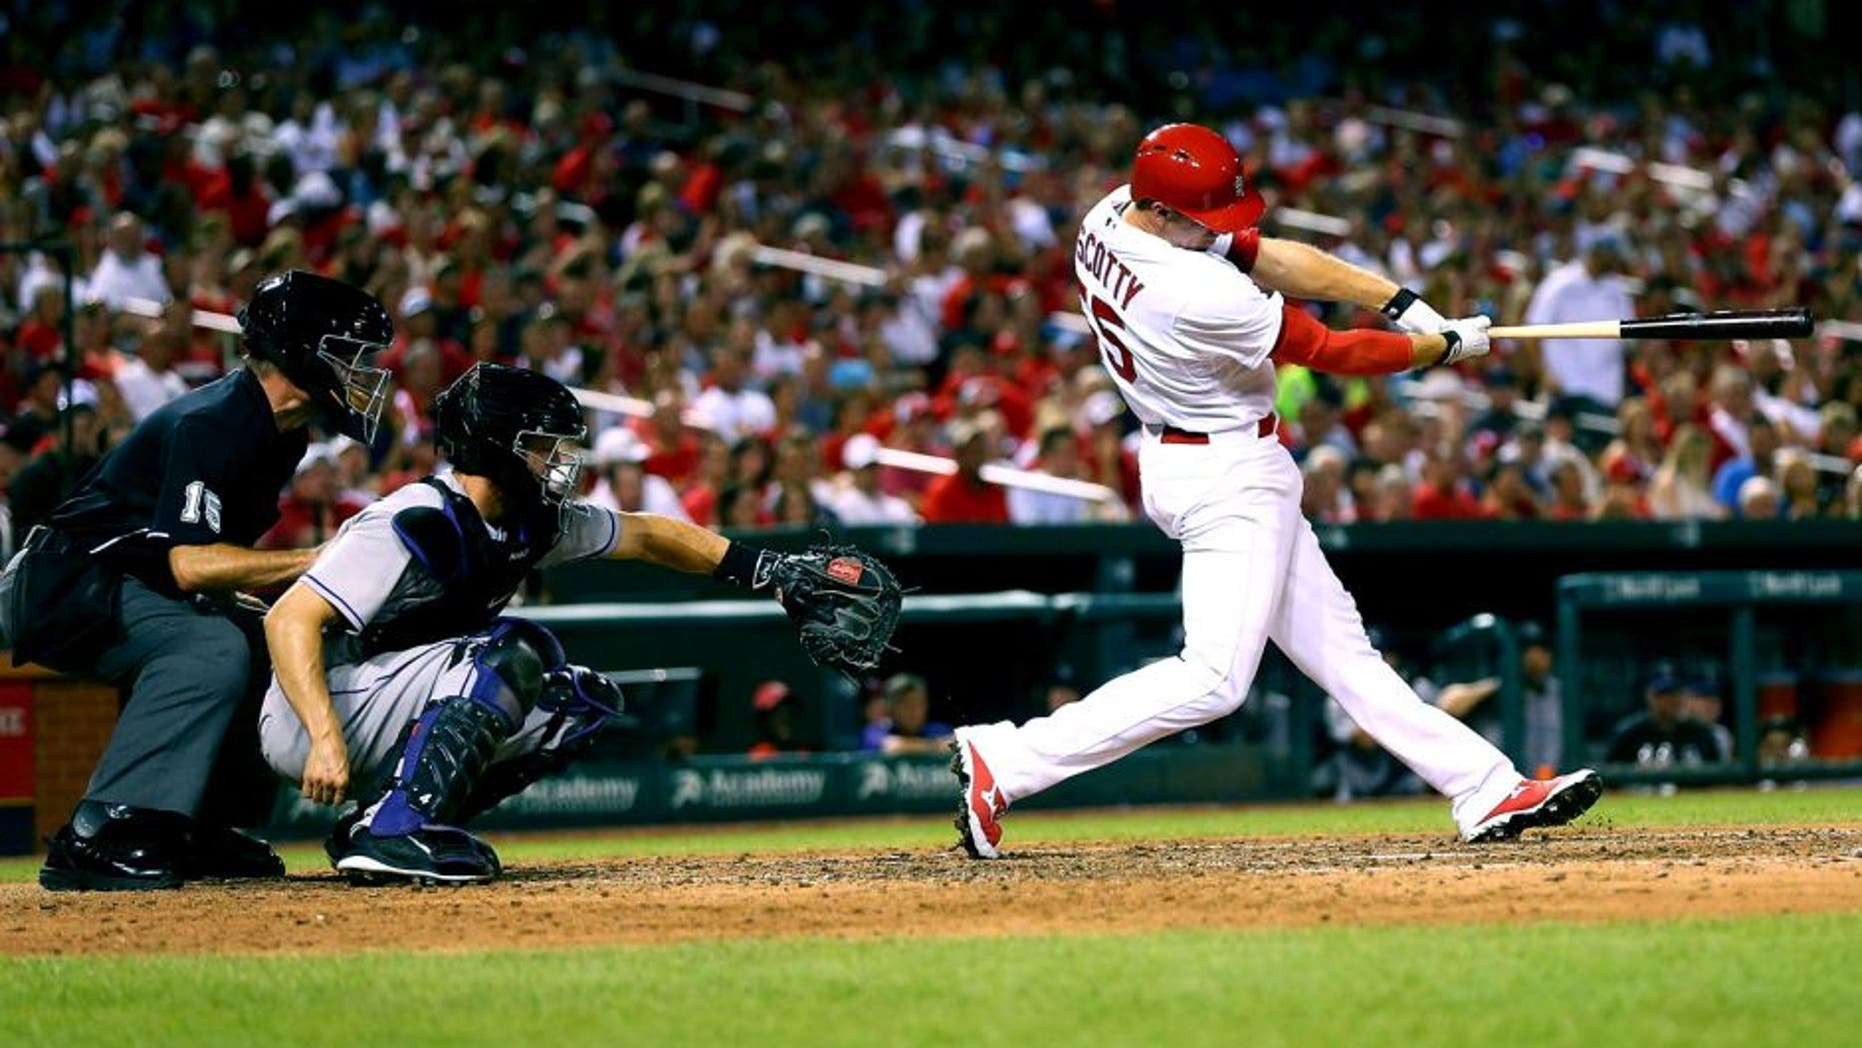 ST. LOUIS, MO - JULY 31: Stephen Piscotty #55 of the St. Louis Cardinals hits a two-RBI double against the Colorado Rockies in the sixth inning at Busch Stadium on July 31, 2015 in St. Louis, Missouri. (Photo by Dilip Vishwanat/Getty Images)